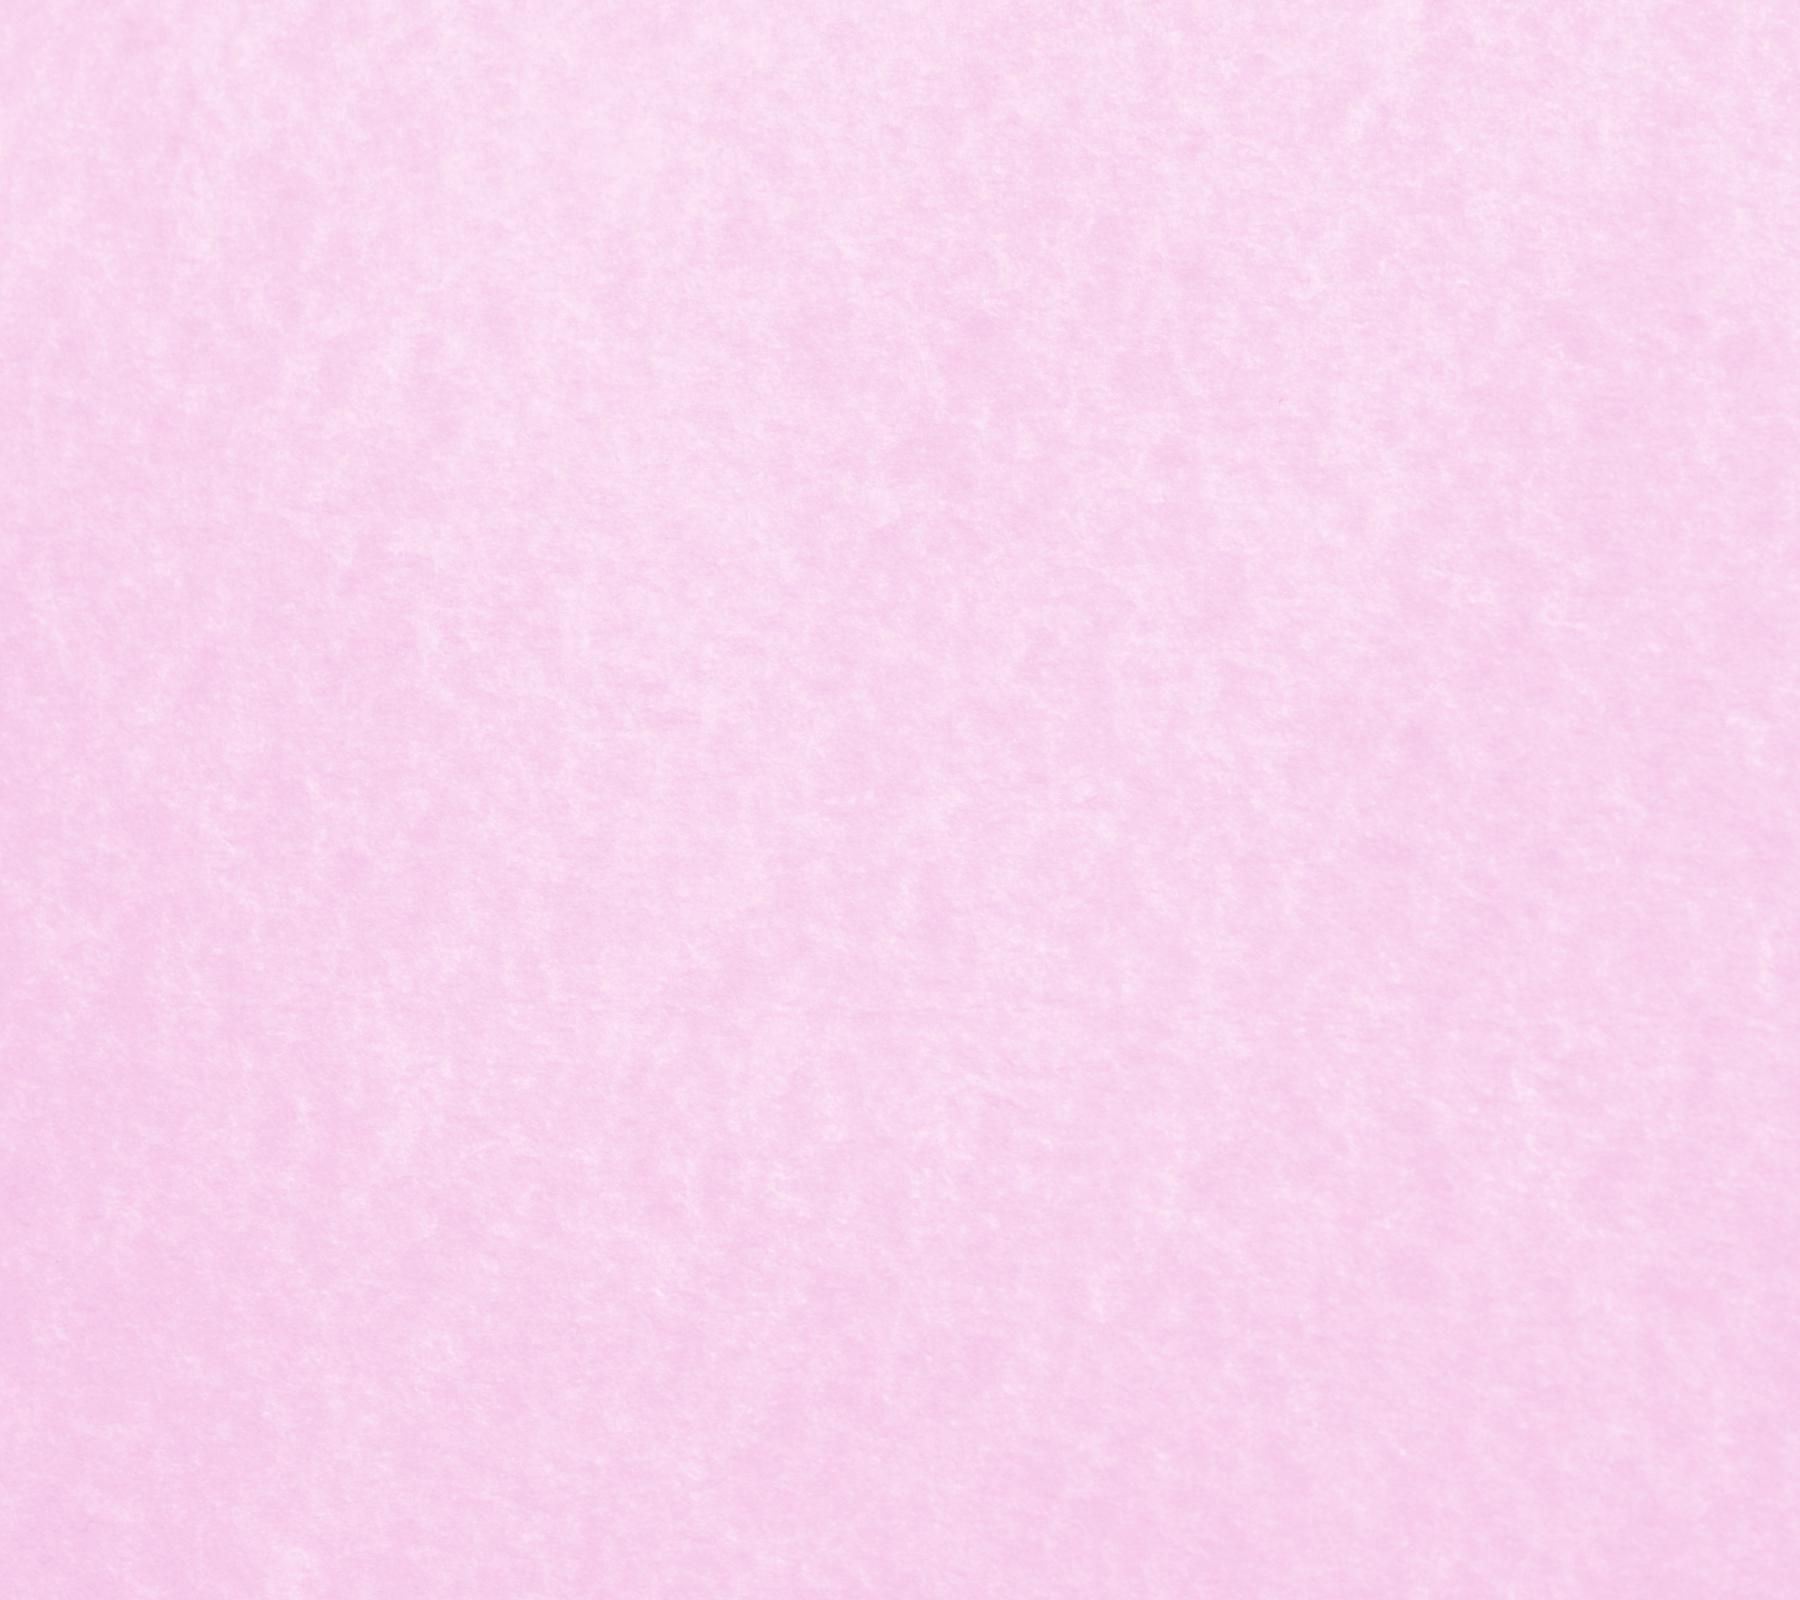 Light Pink Backgrounds Wallpaper Cave With Images Pink